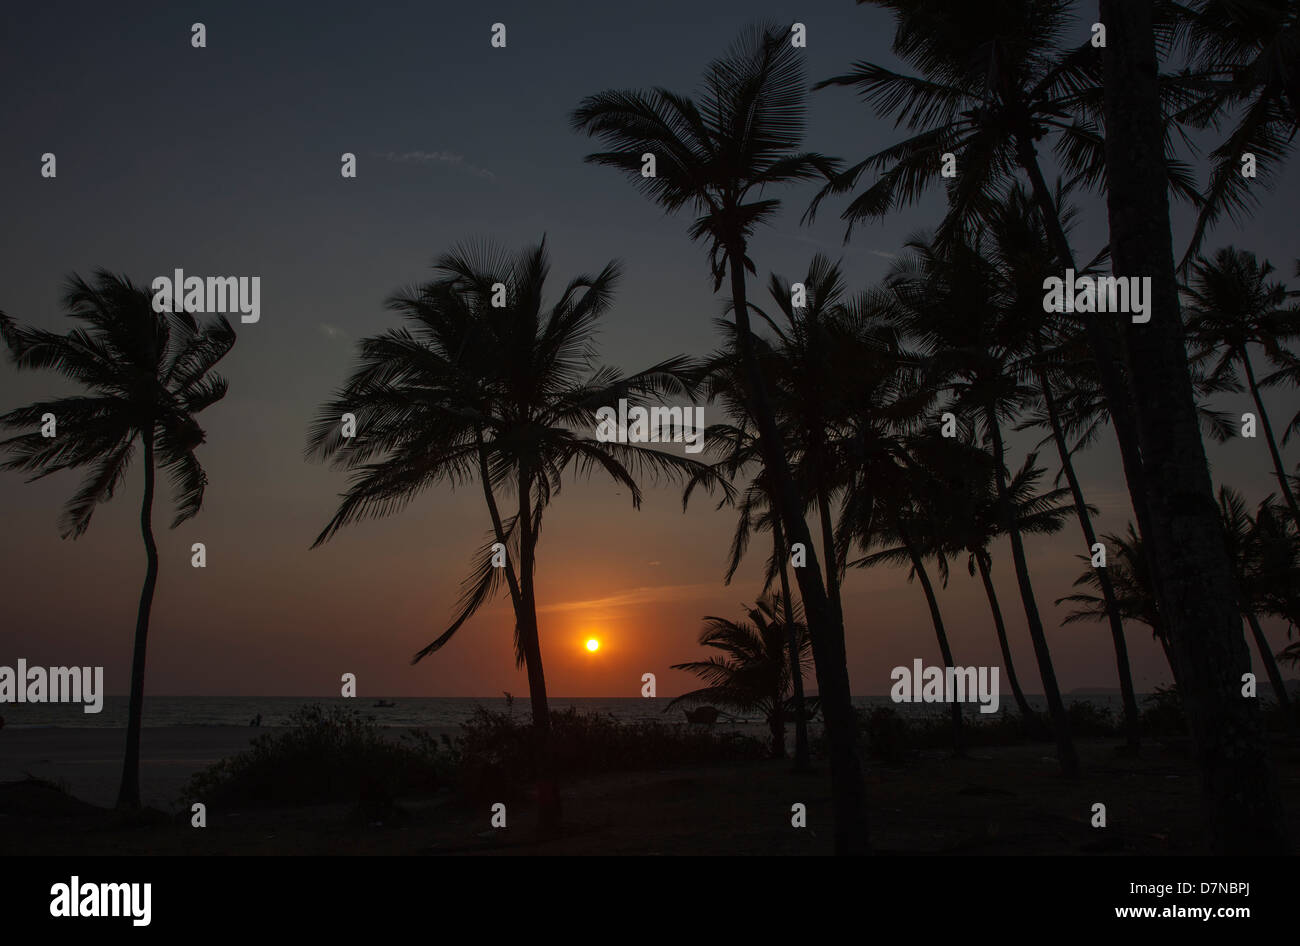 A sunset viewed through palm trees over the Arabian Sea, Arossim Beach, Southern Goa, India. - Stock Image